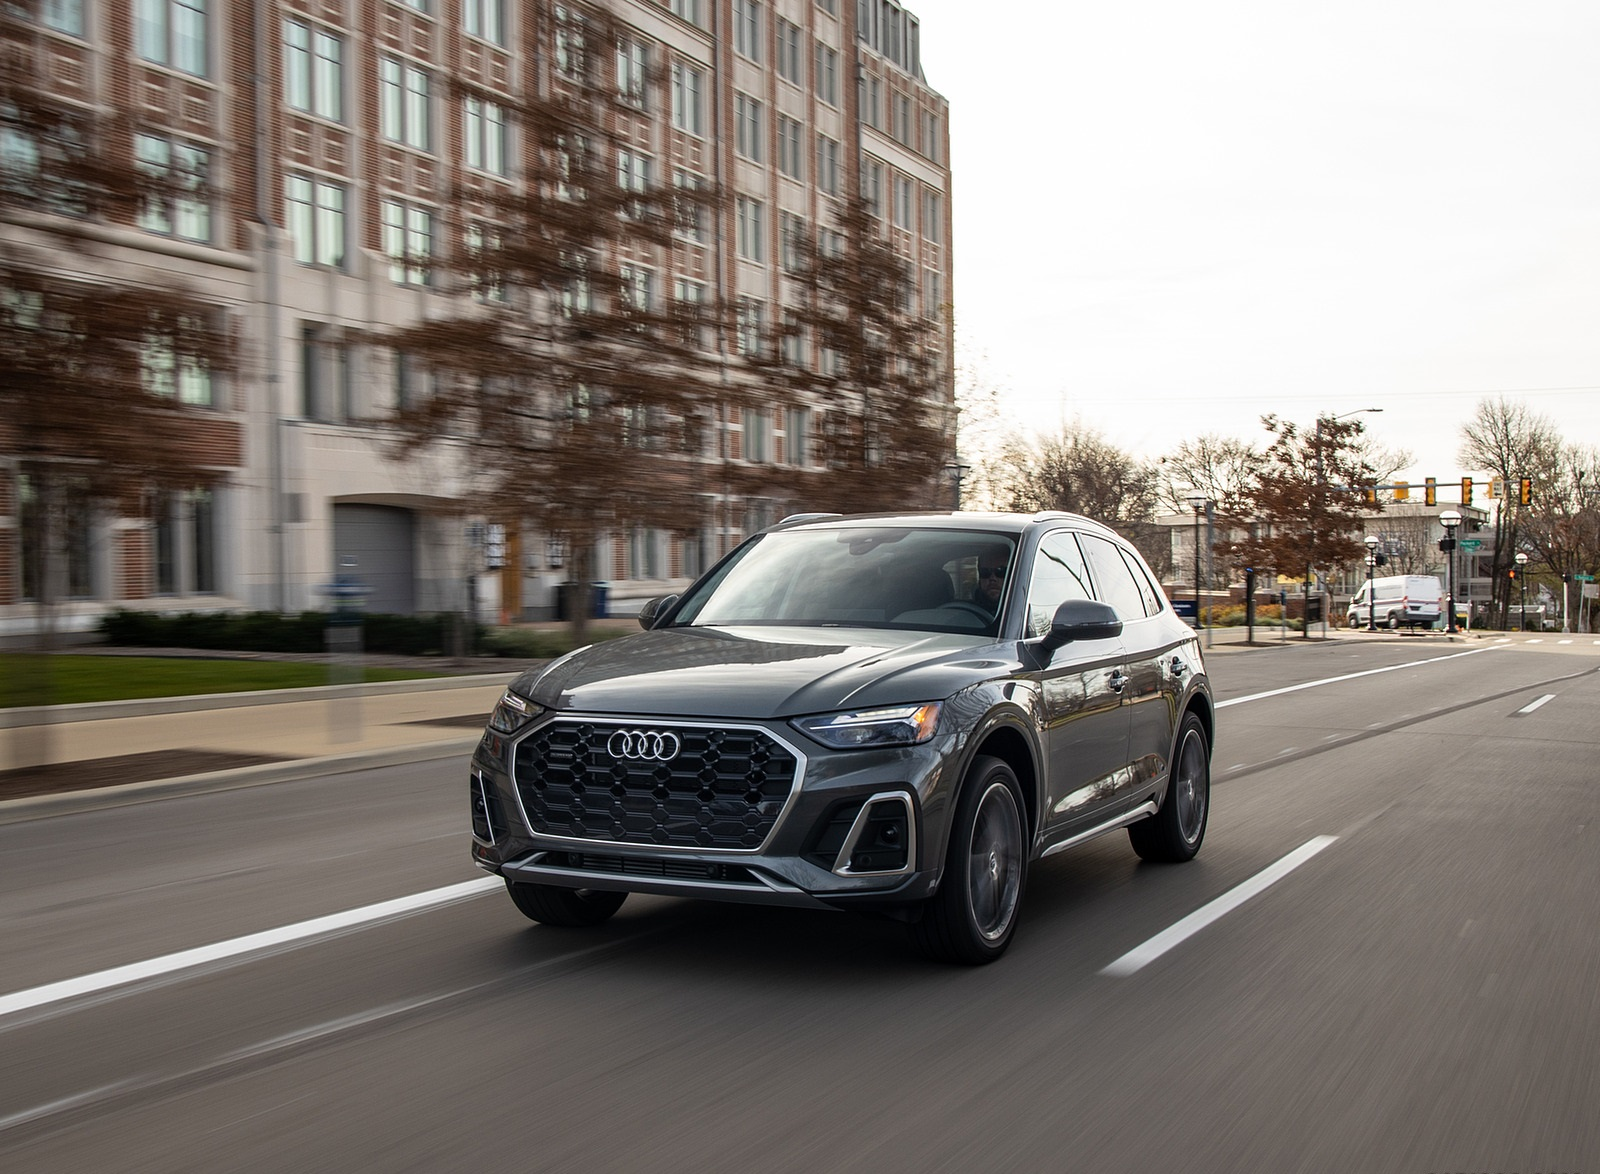 2021 Audi Q5 55 TFSI e quattro PHEV (US-Spec) Front Three-Quarter Wallpapers (6)